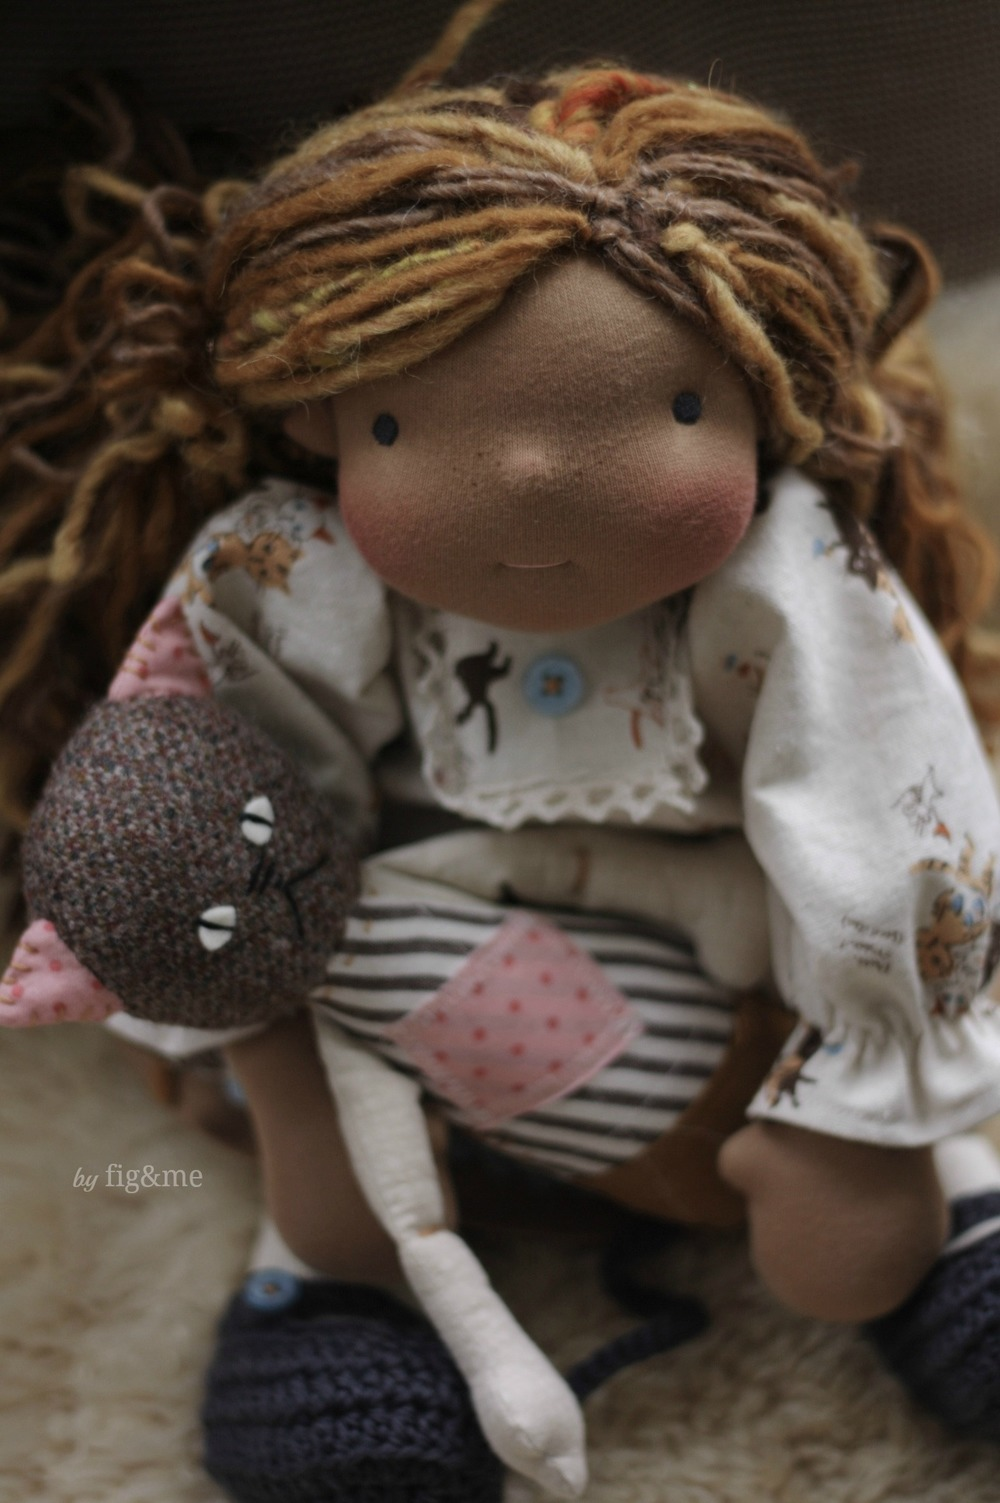 Lottie and her old best friend, by Fig&me.